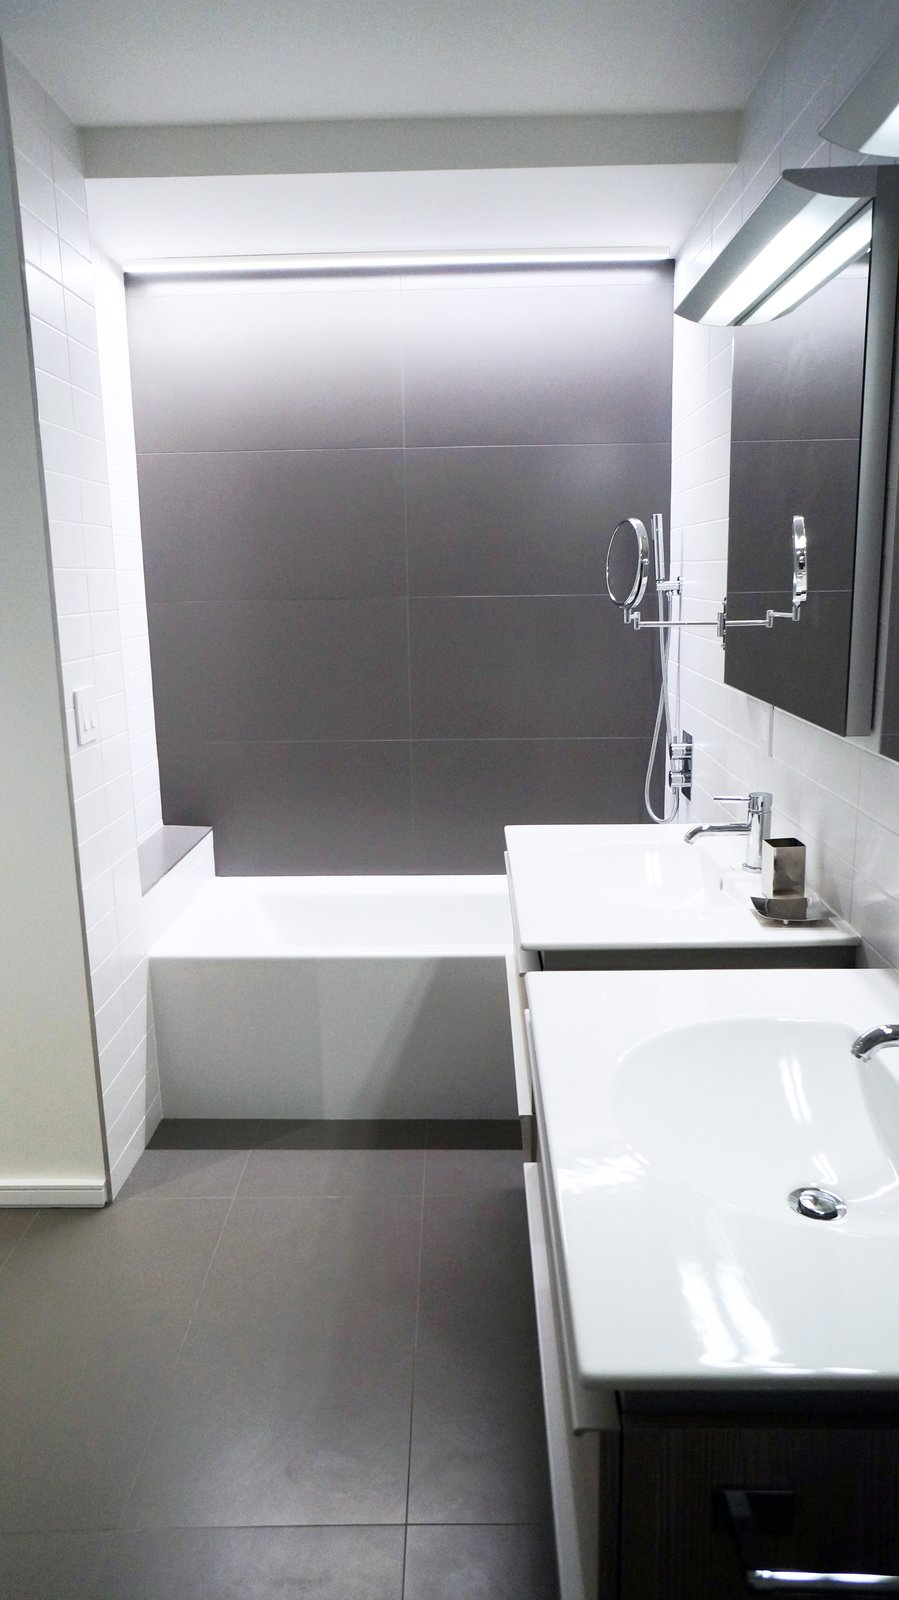 Duplex Apartment Gut Renovation Modern Home In New York New York By - How to gut a bathroom